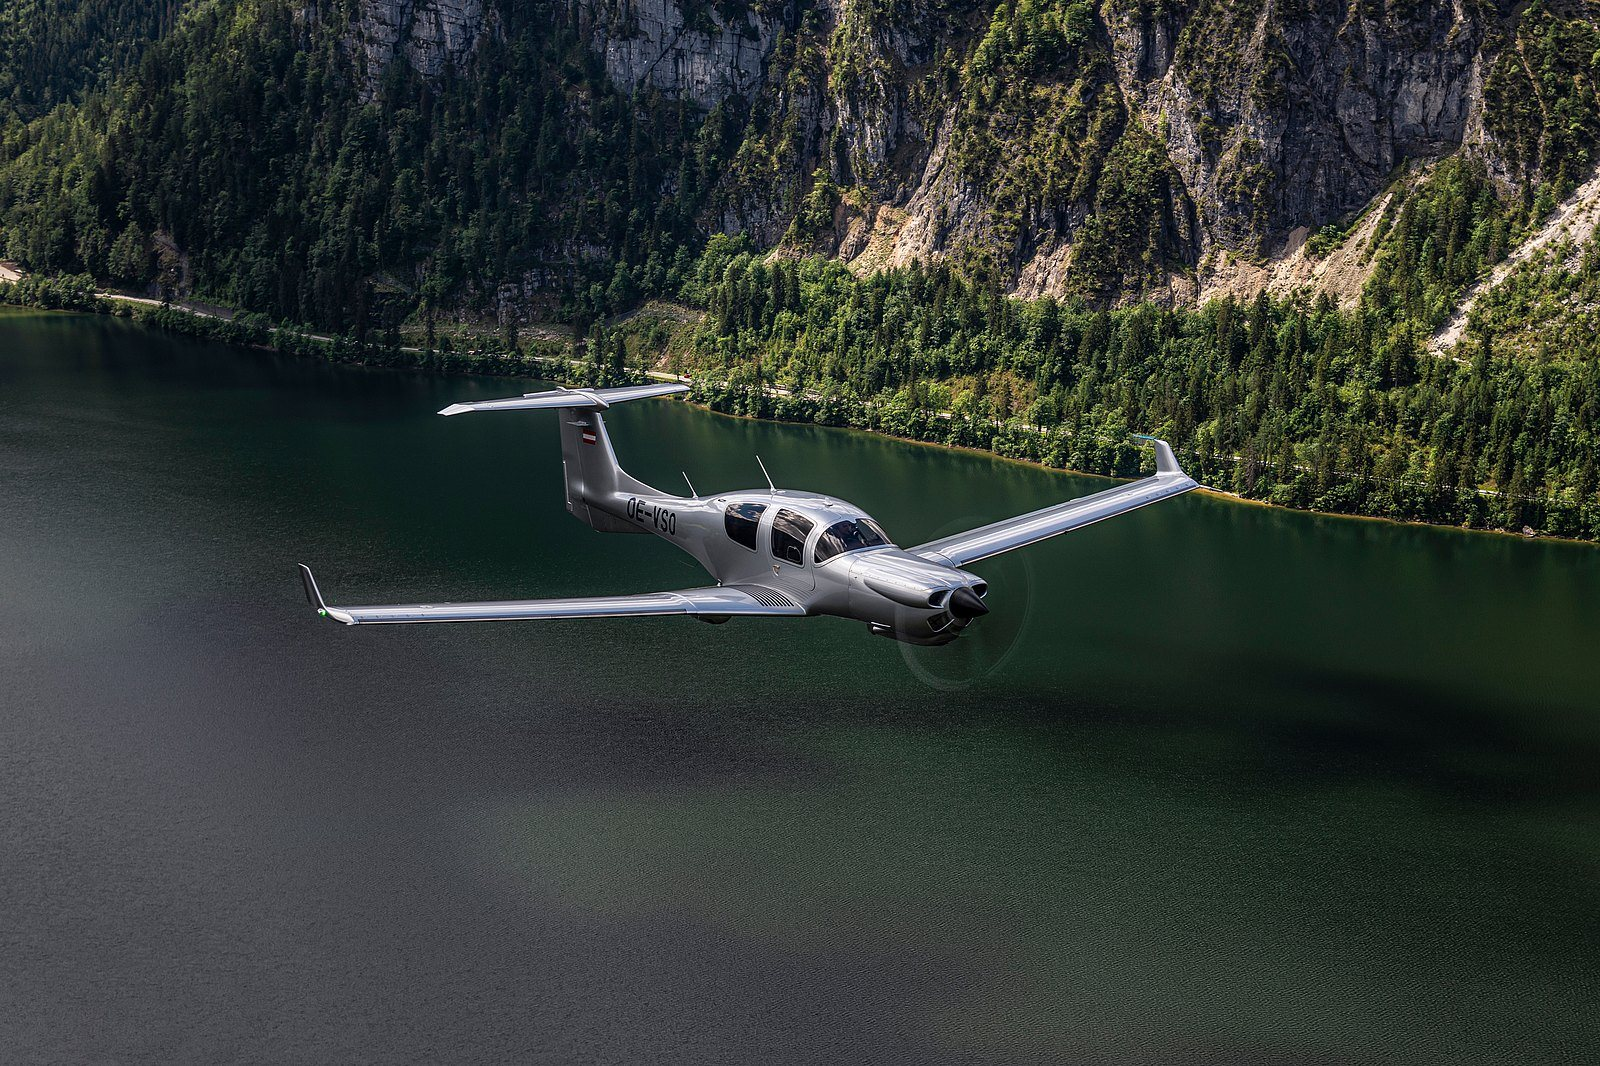 2020 Diamond DA50 RG Aircraft